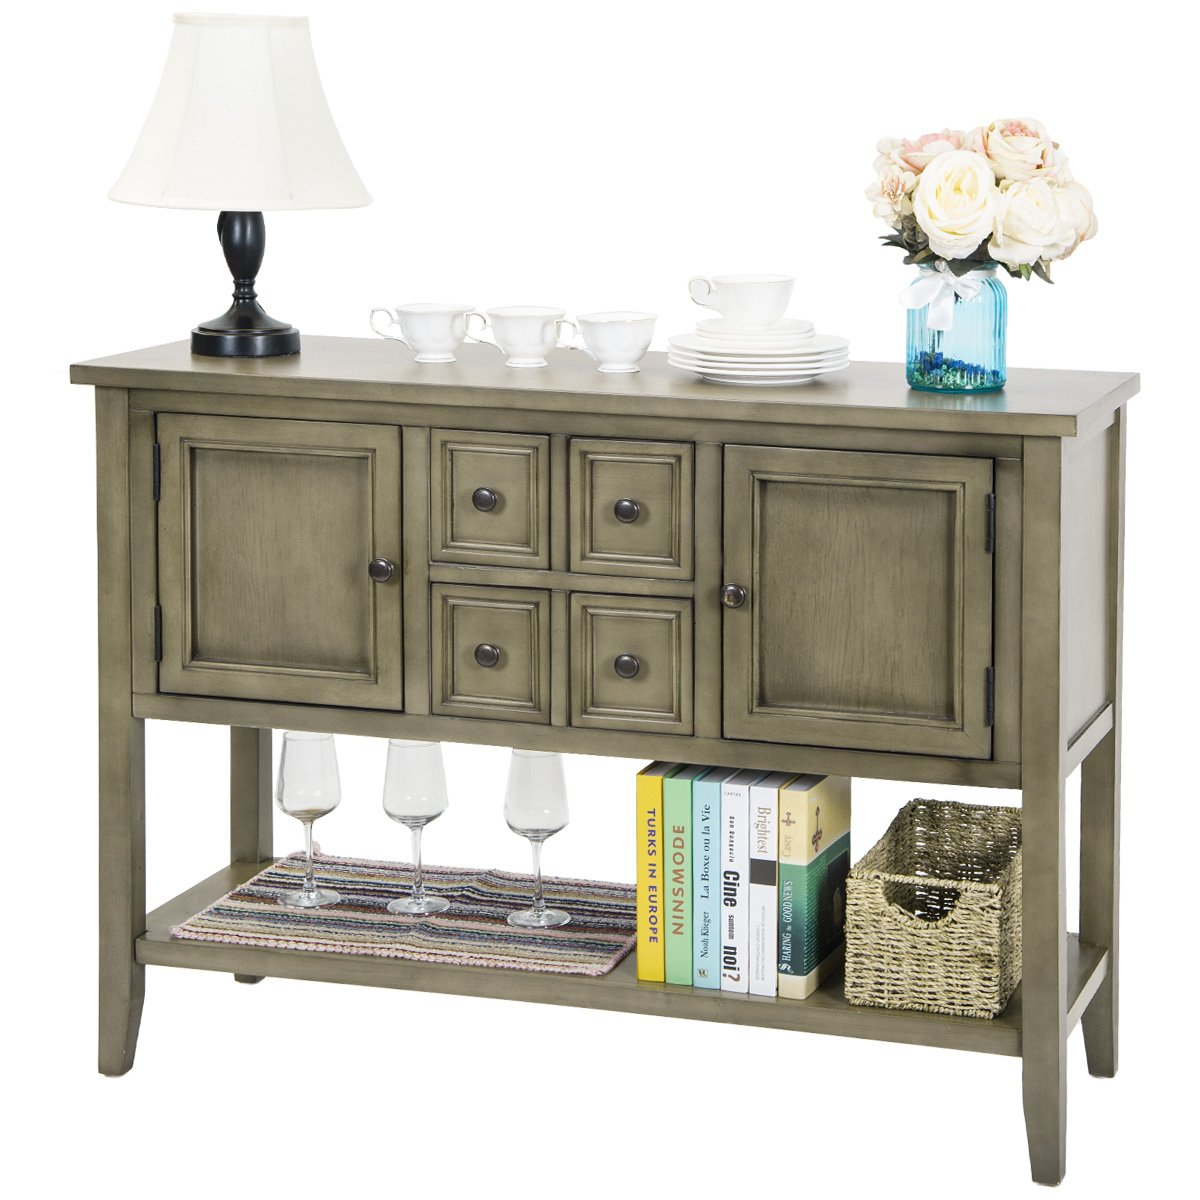 harperbright designs acacia mangium sideboard console wyl harper round accent table with bottom shelf antique gray buffets sideboards bathroom tray marble top dining cabinet